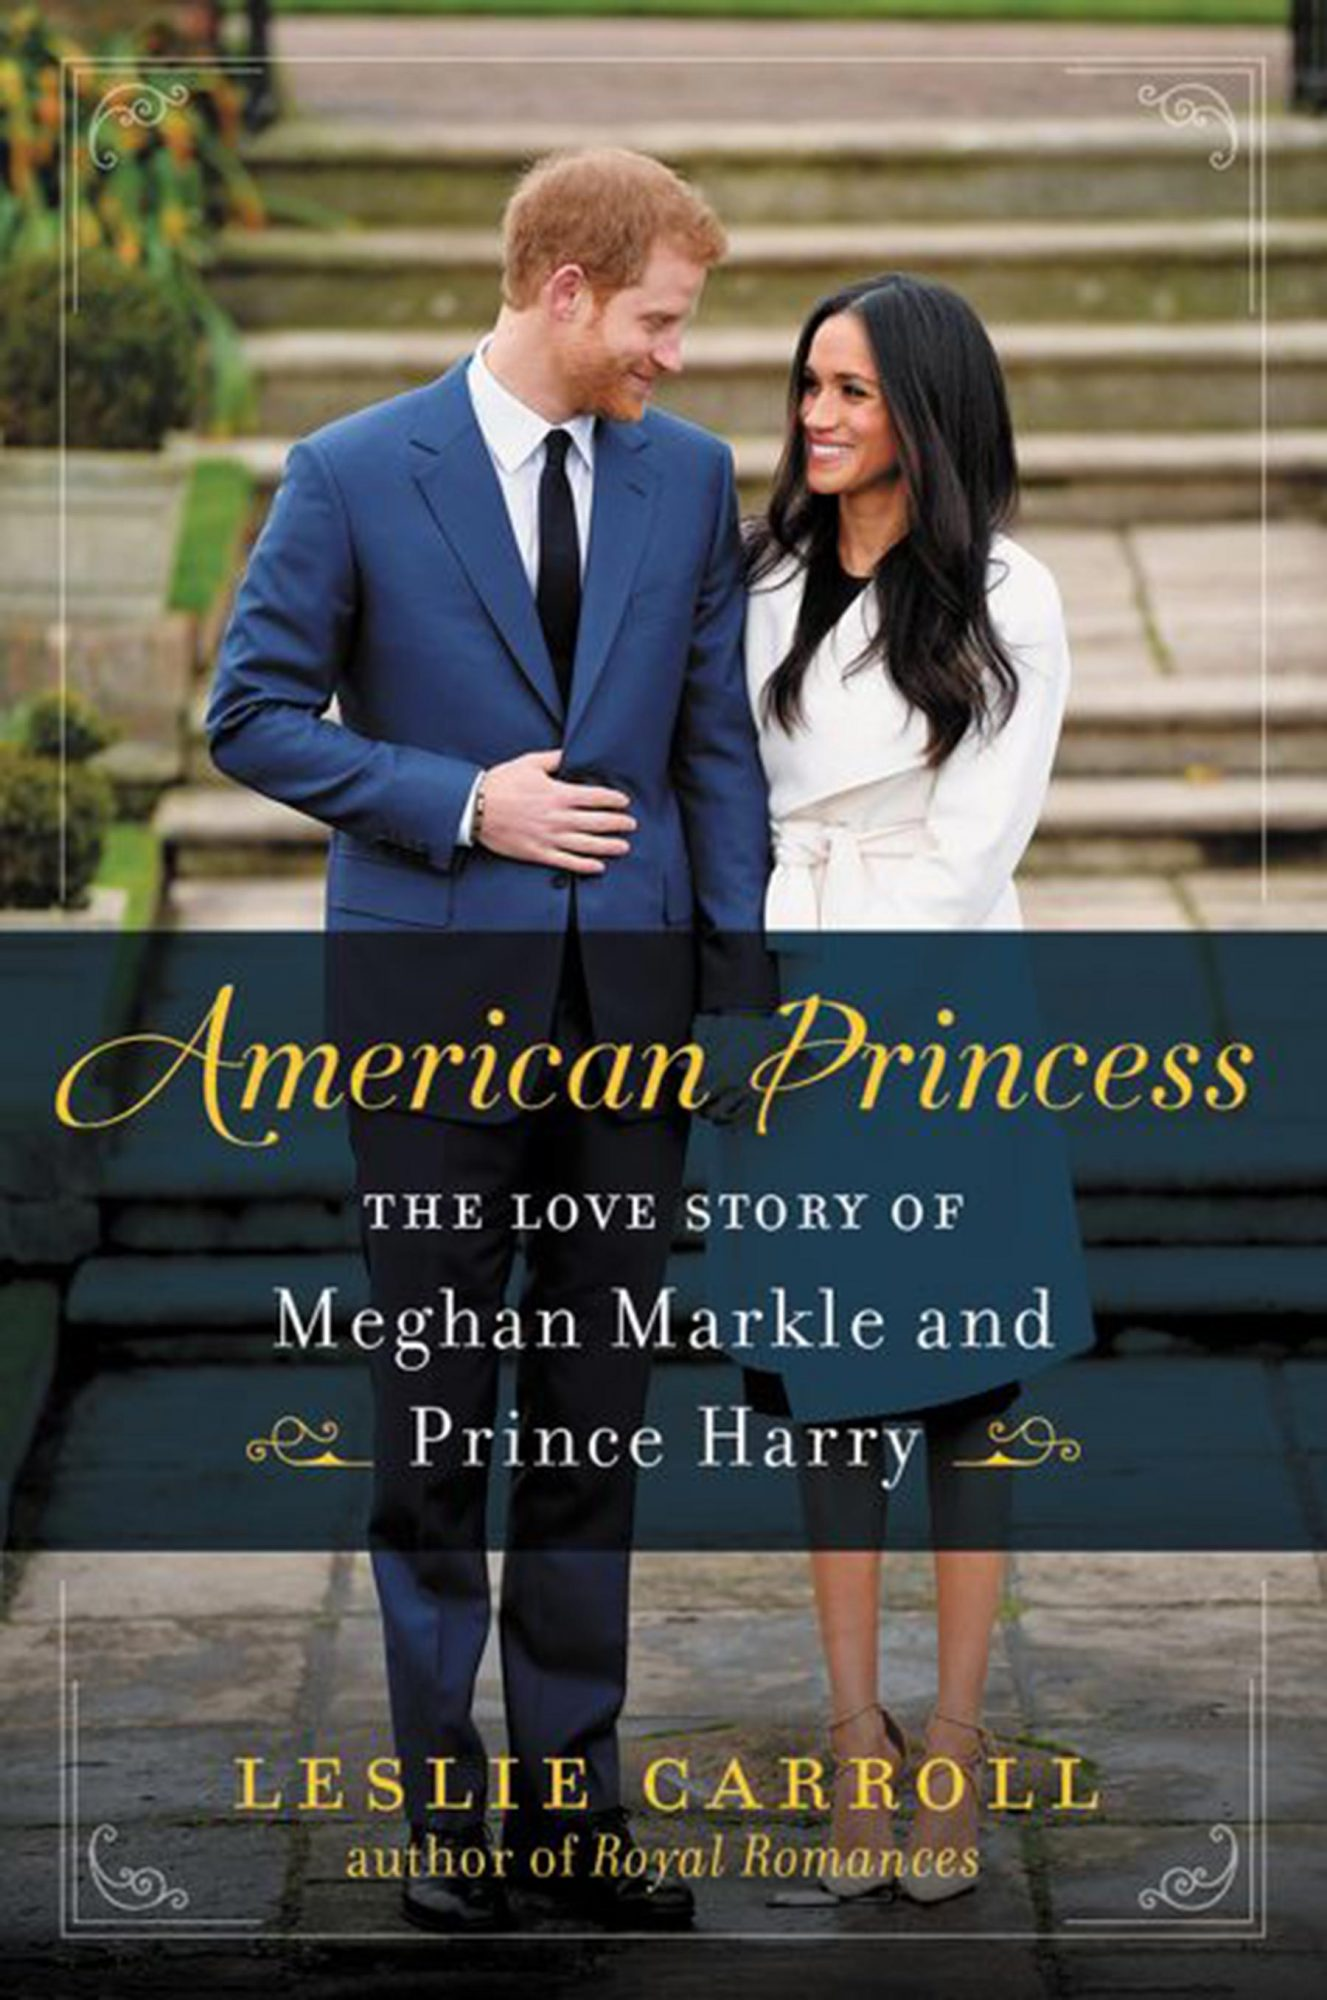 American Princess: The Love Story of Meghan Markle and Prince Harry by Leslie Carrol